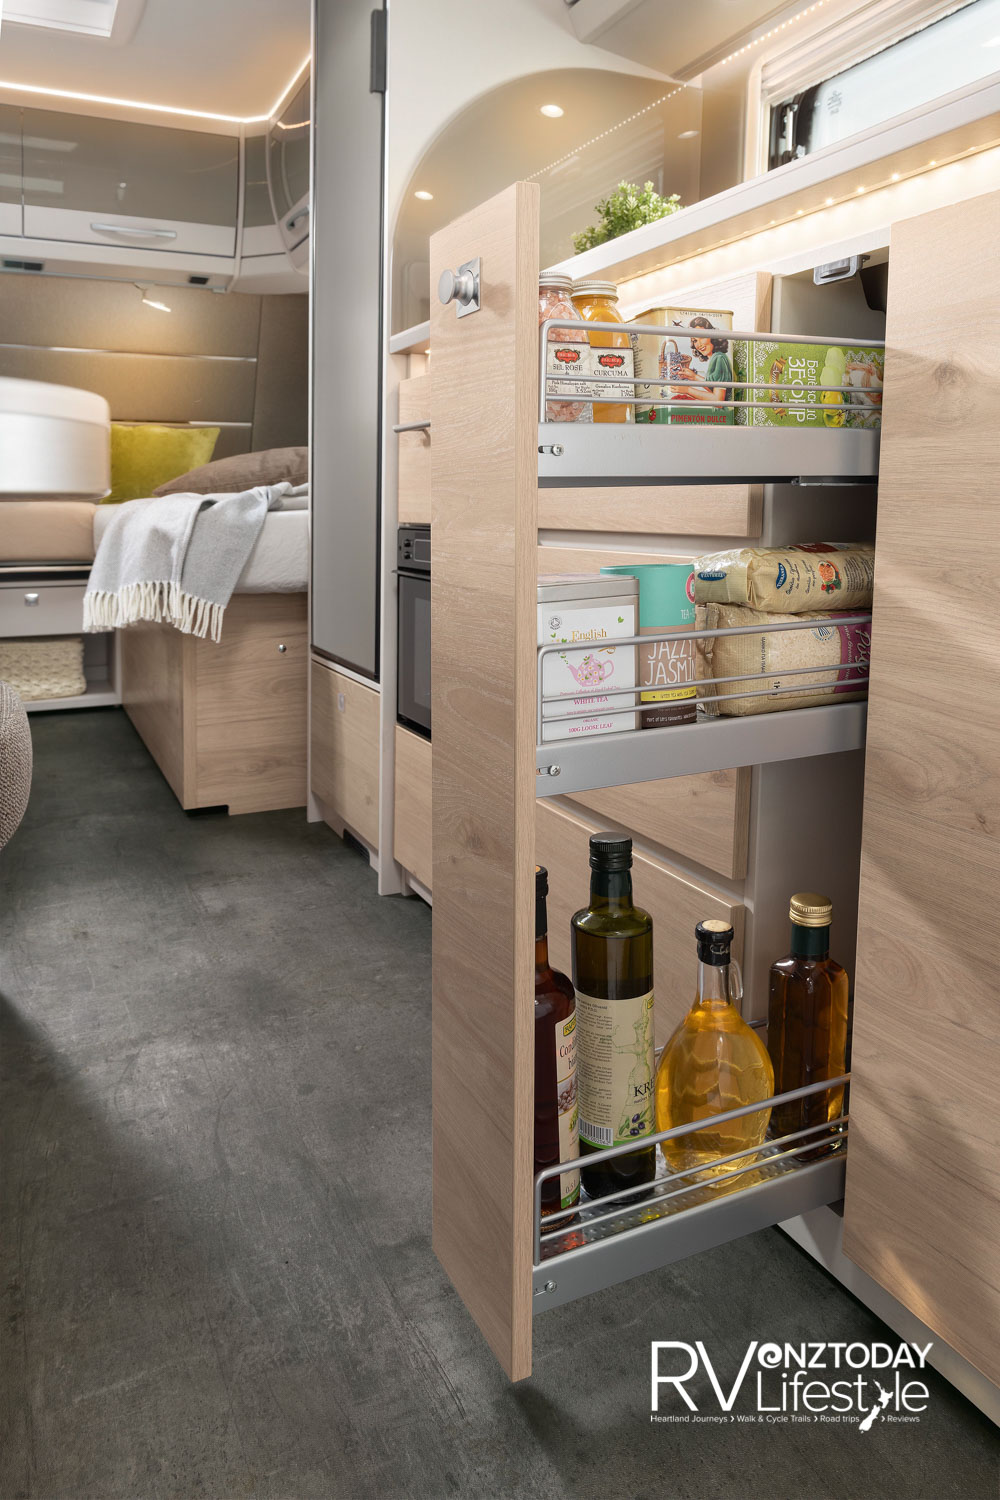 The kitchen storage is well equipped with pull-out pantry, drawers and overhead cupboard storage available